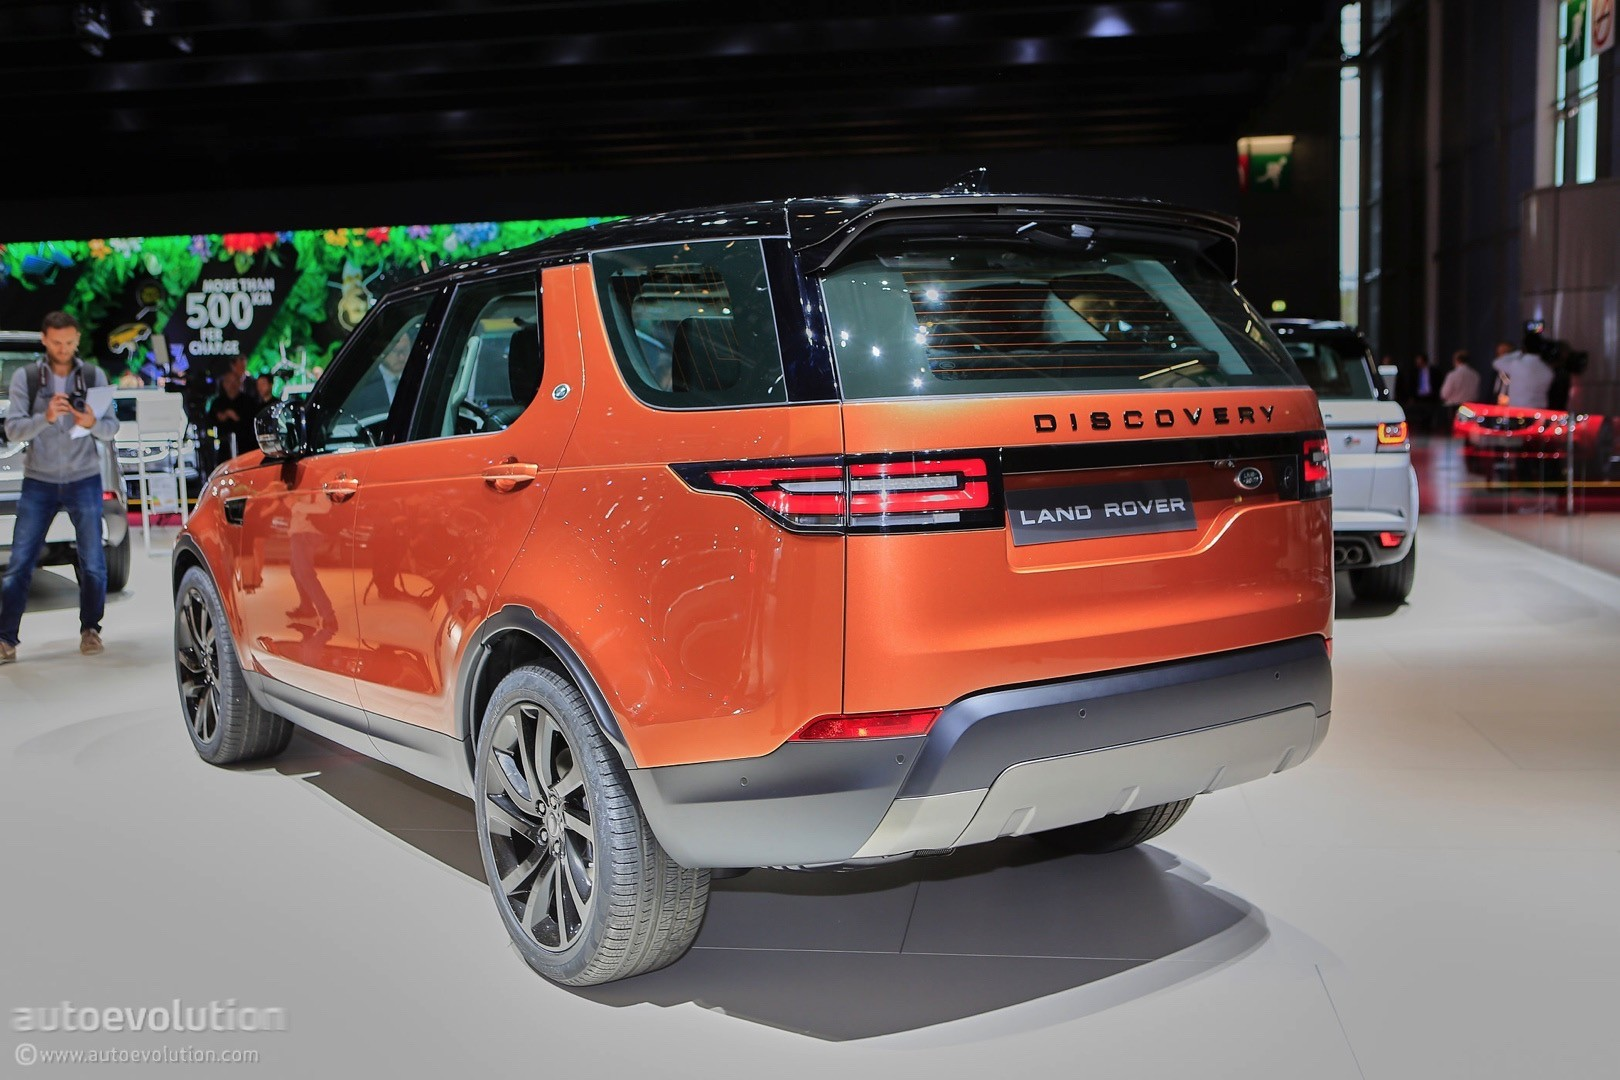 ... 2017 Land Rover Discovery 5 live at 2016 Paris Motor Show ...